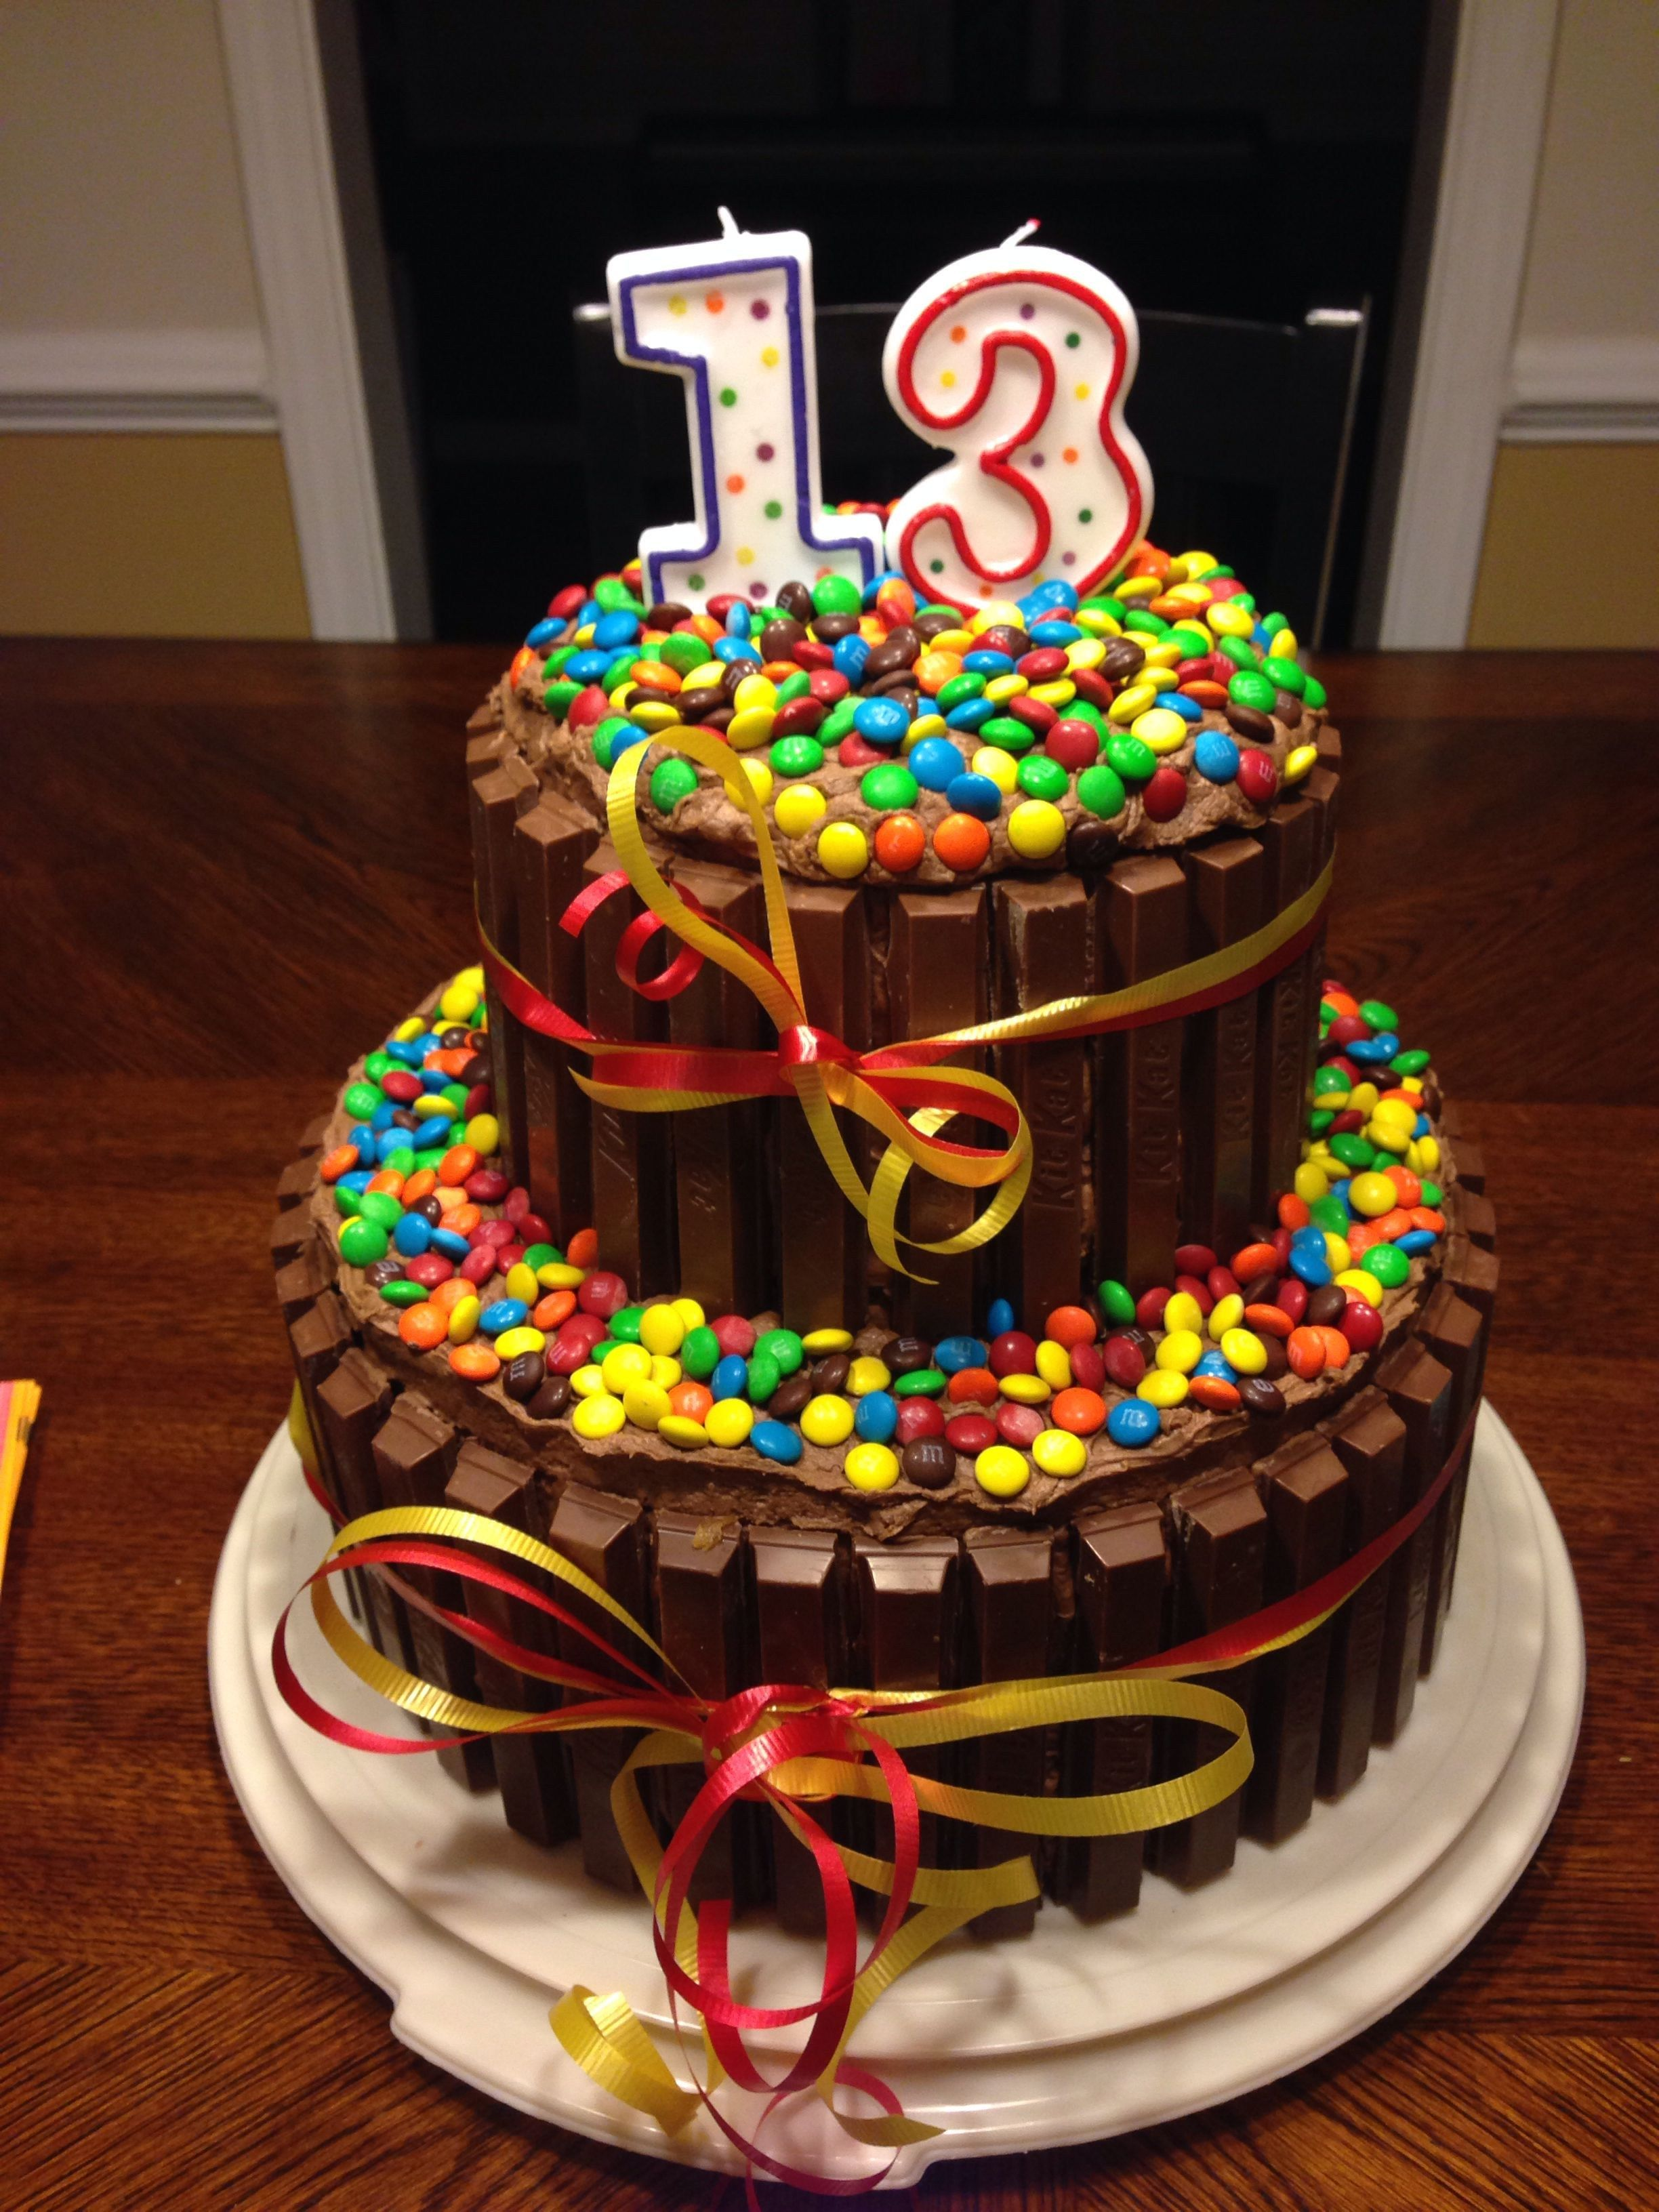 25 Awesome Image Of Birthday Cake For 12 Year Old Boy 13th